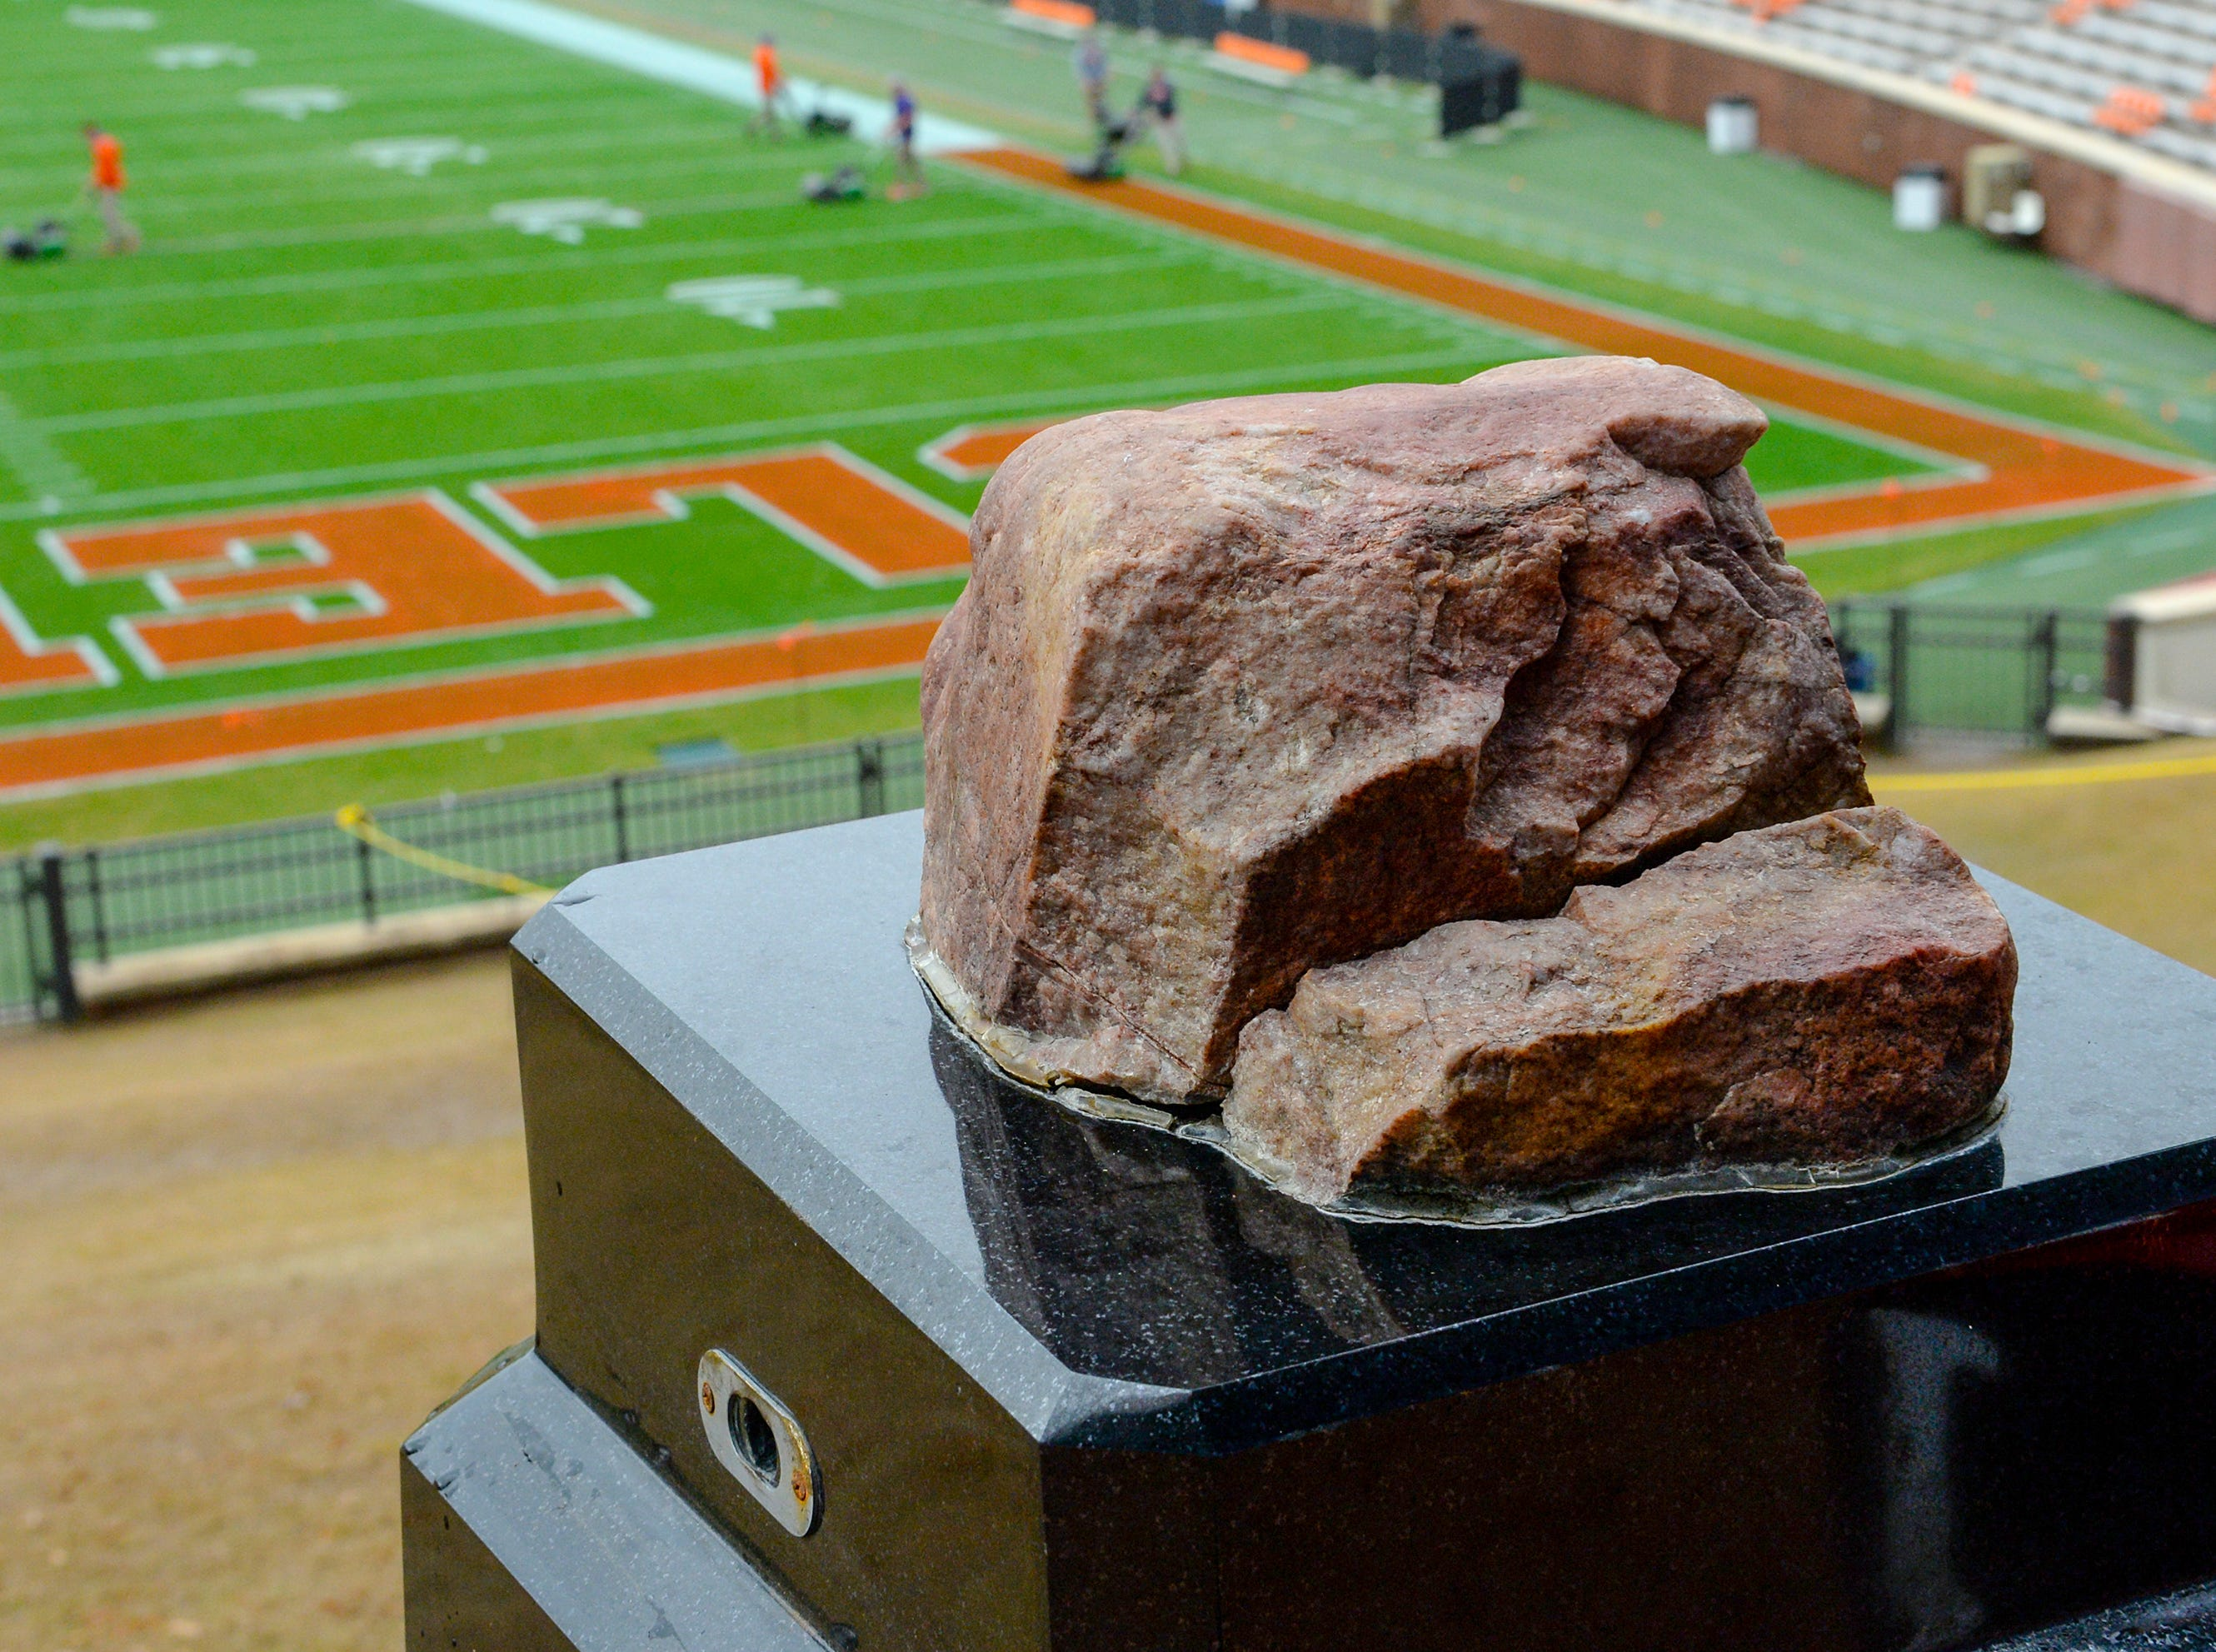 Howard's Rock hours before kickoff in Memorial Stadium, before the South Carolina at Clemson football game is played in Clemson on Saturday, November 24, 2018.